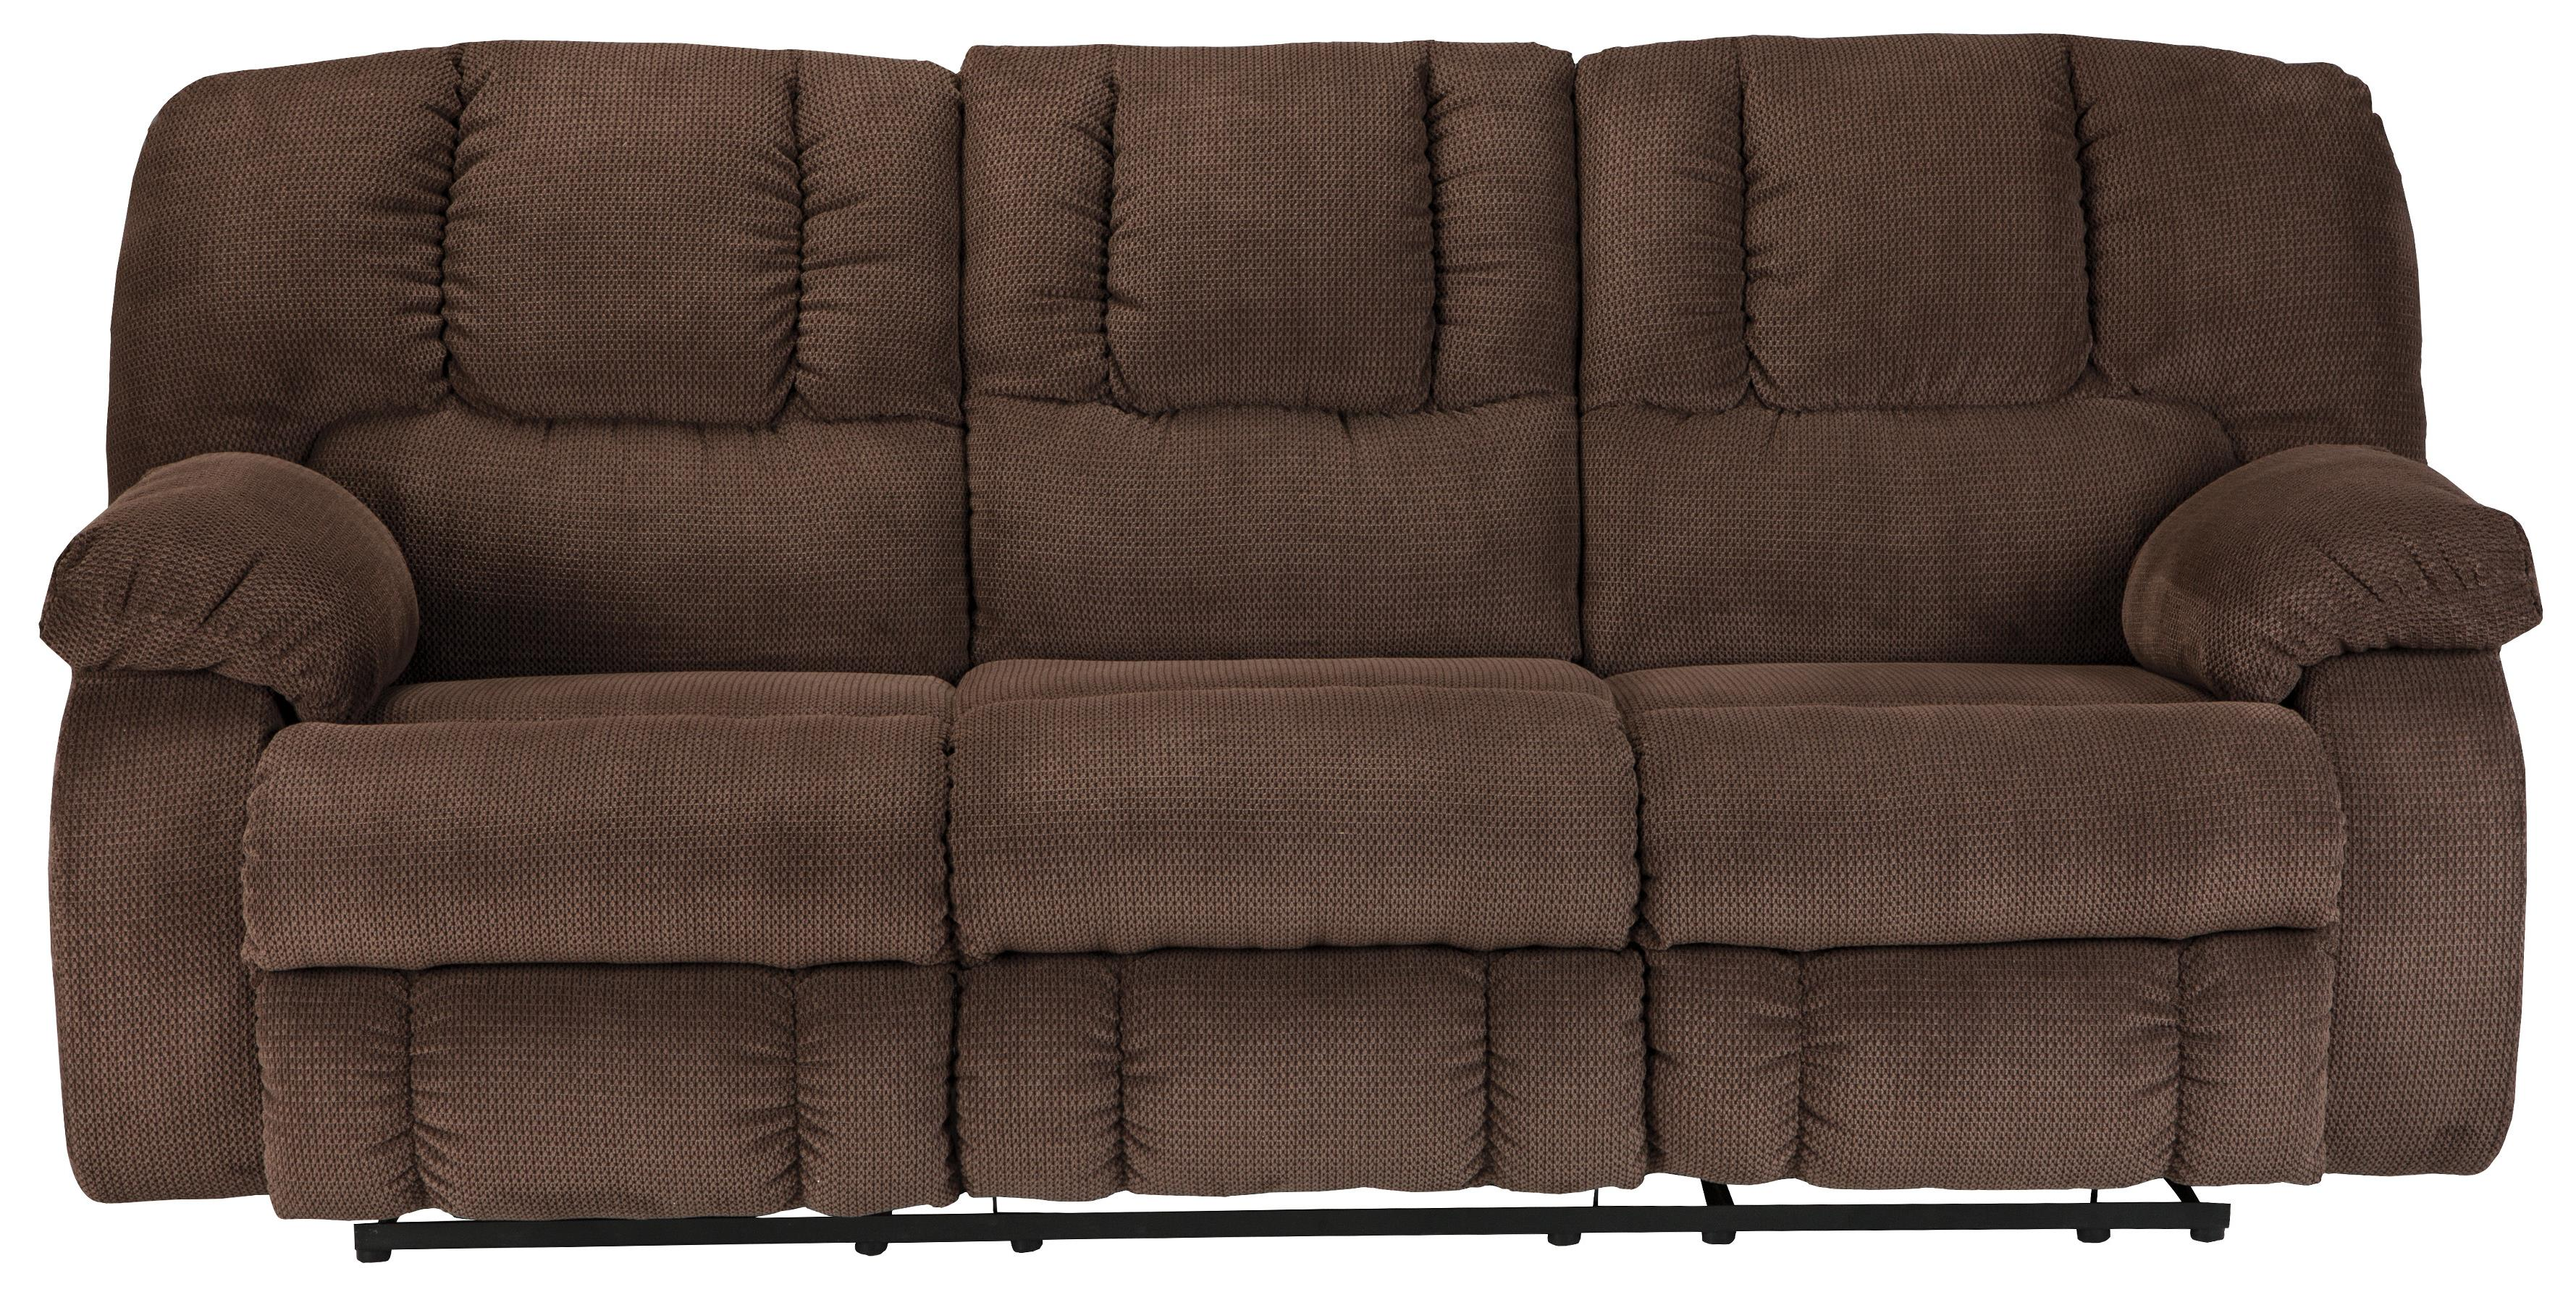 Benchcraft Roan Contemporary Reclining Sofa Dream Home Furniture Reclining Sofa Roswell